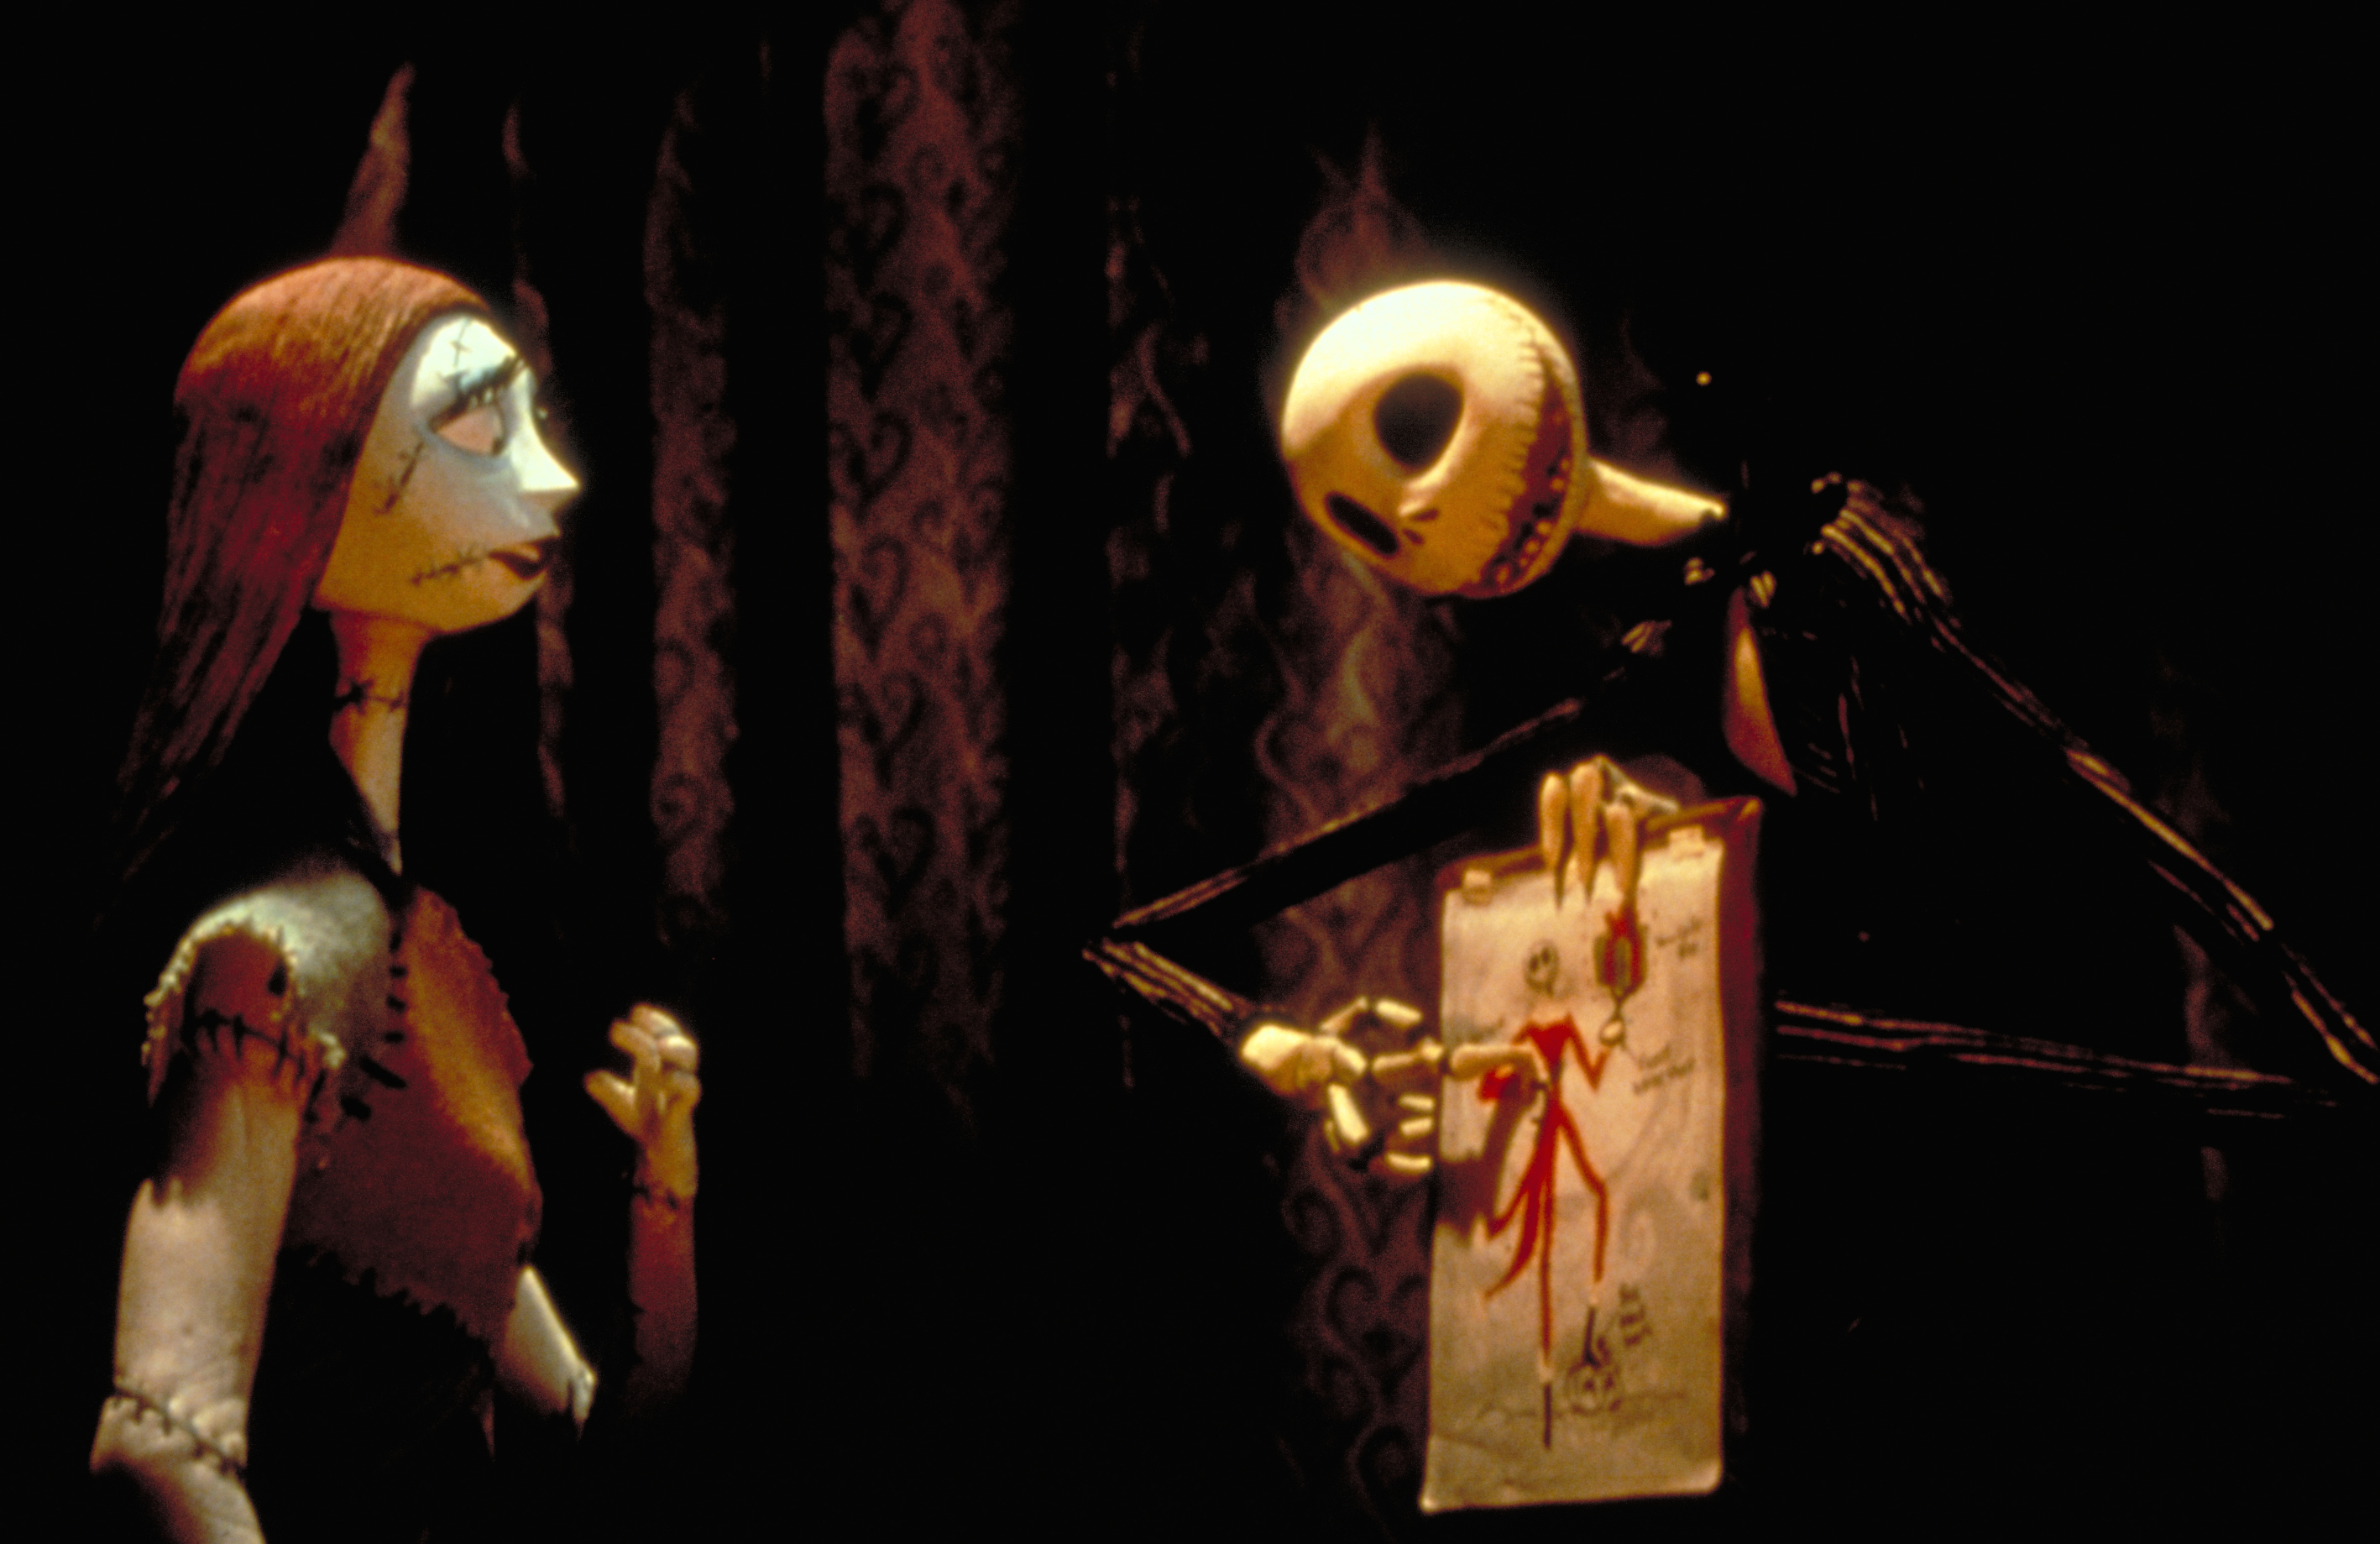 Nightmare Before Christmas Halloween party ideas